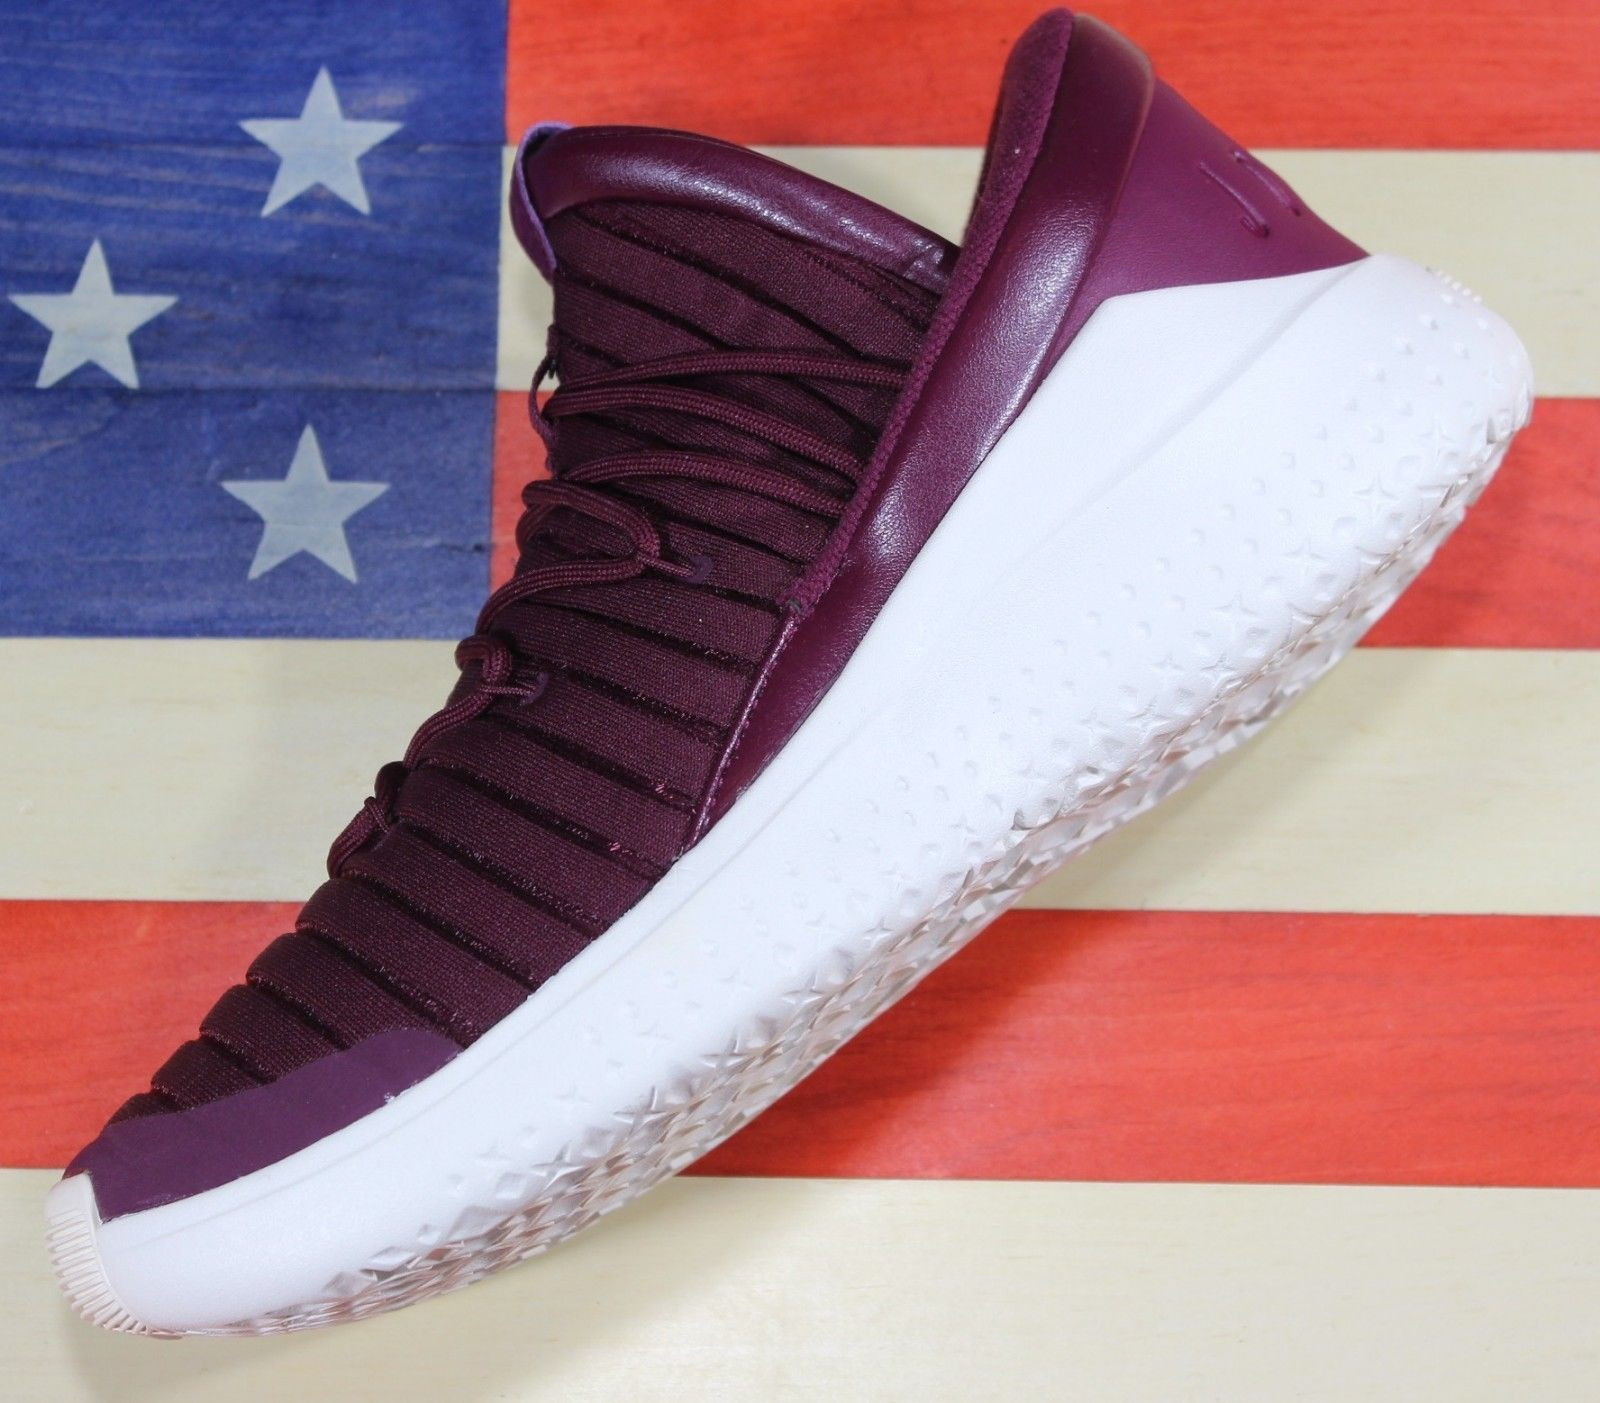 790a10055 Nike Air Jordan Flight Luxe Retro Bordeaux-Sail White Training Shoe  919715-637   -  55.10